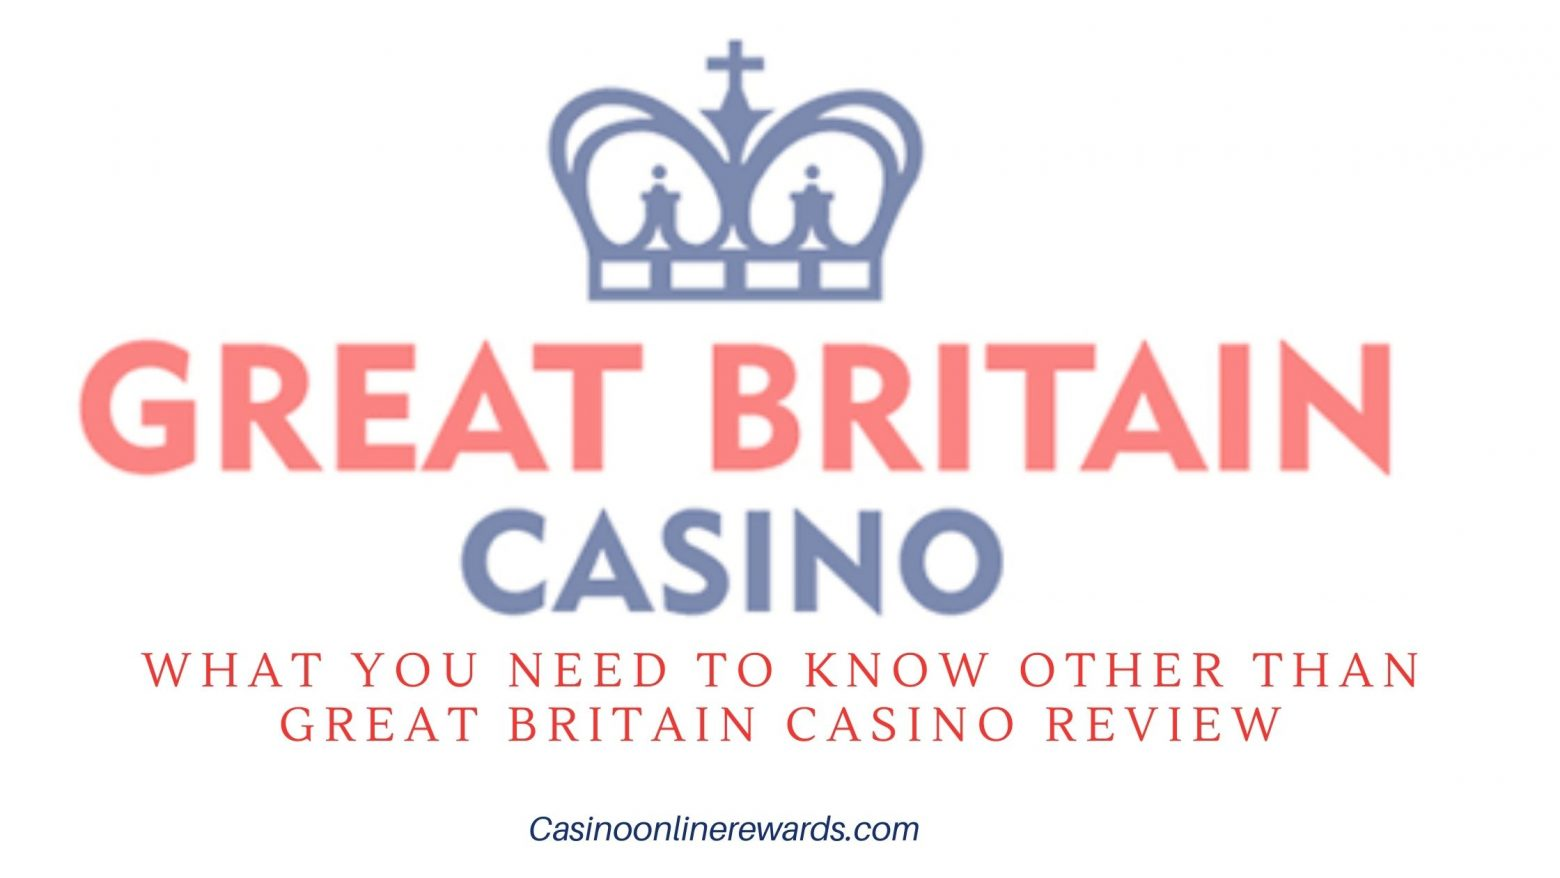 What You Need to Know Other than GREAT BRITAIN CASINO review